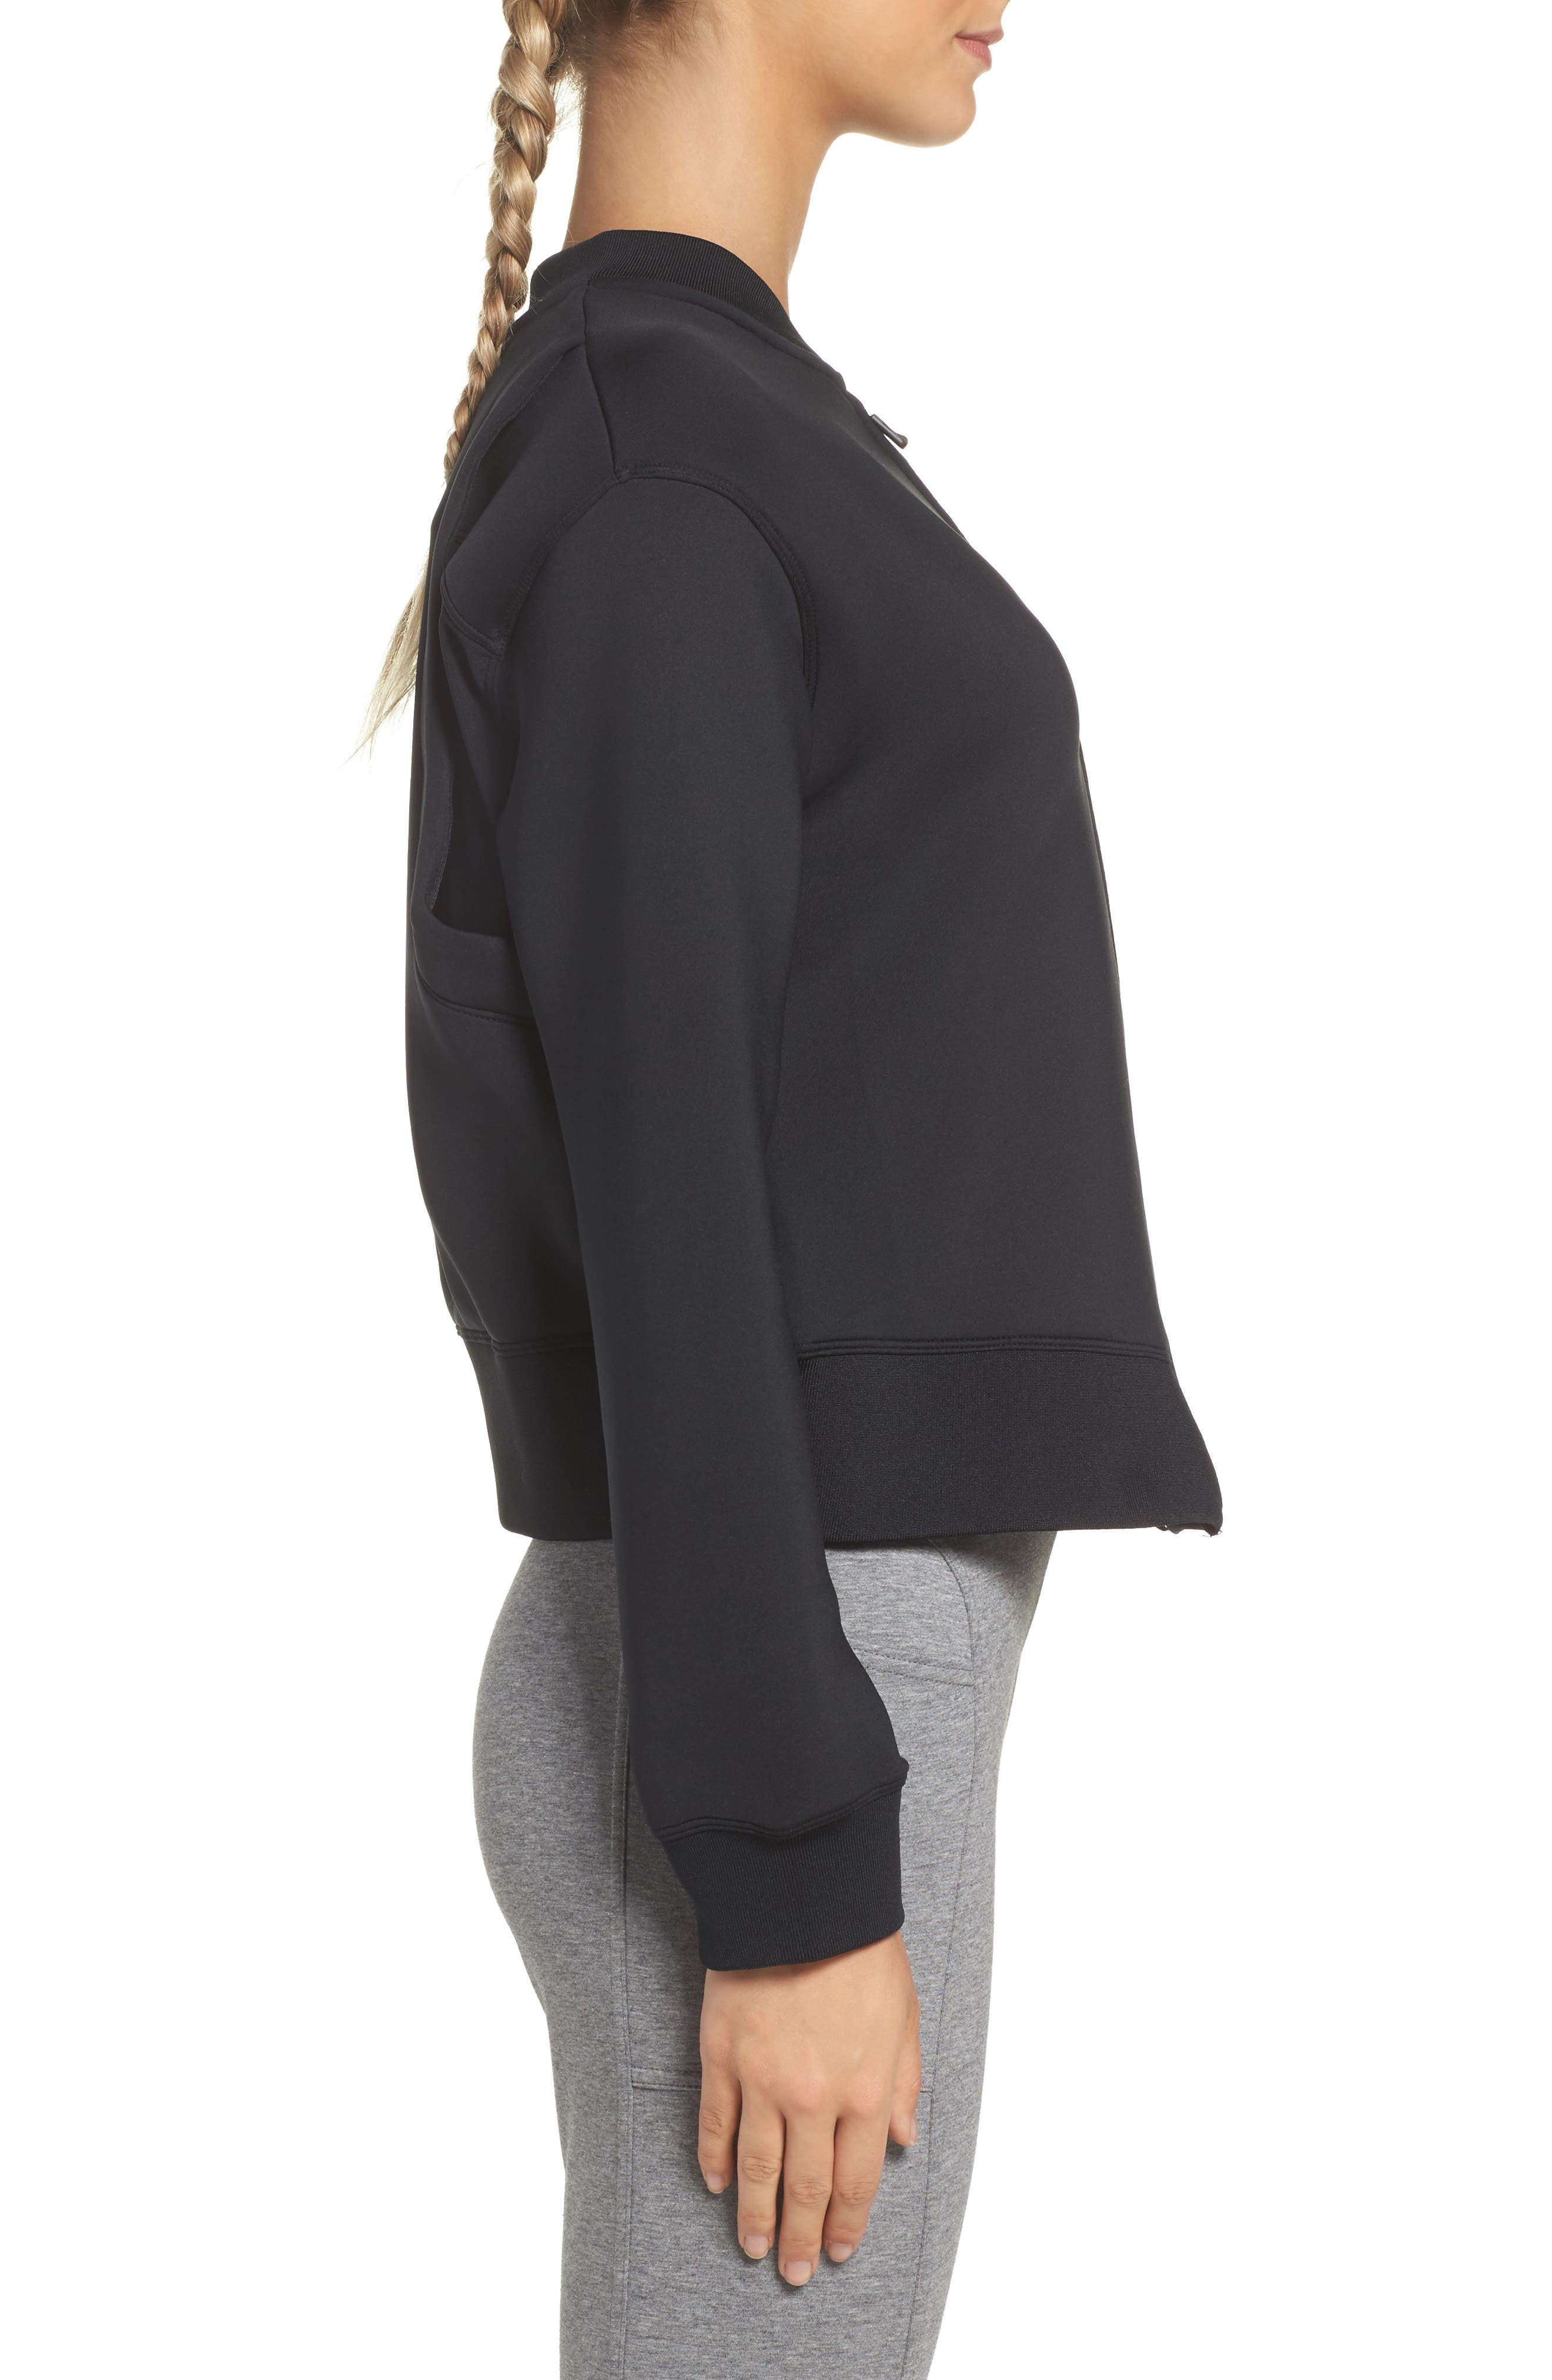 Therma Sphere Max Training Jacket,                             Alternate thumbnail 8, color,